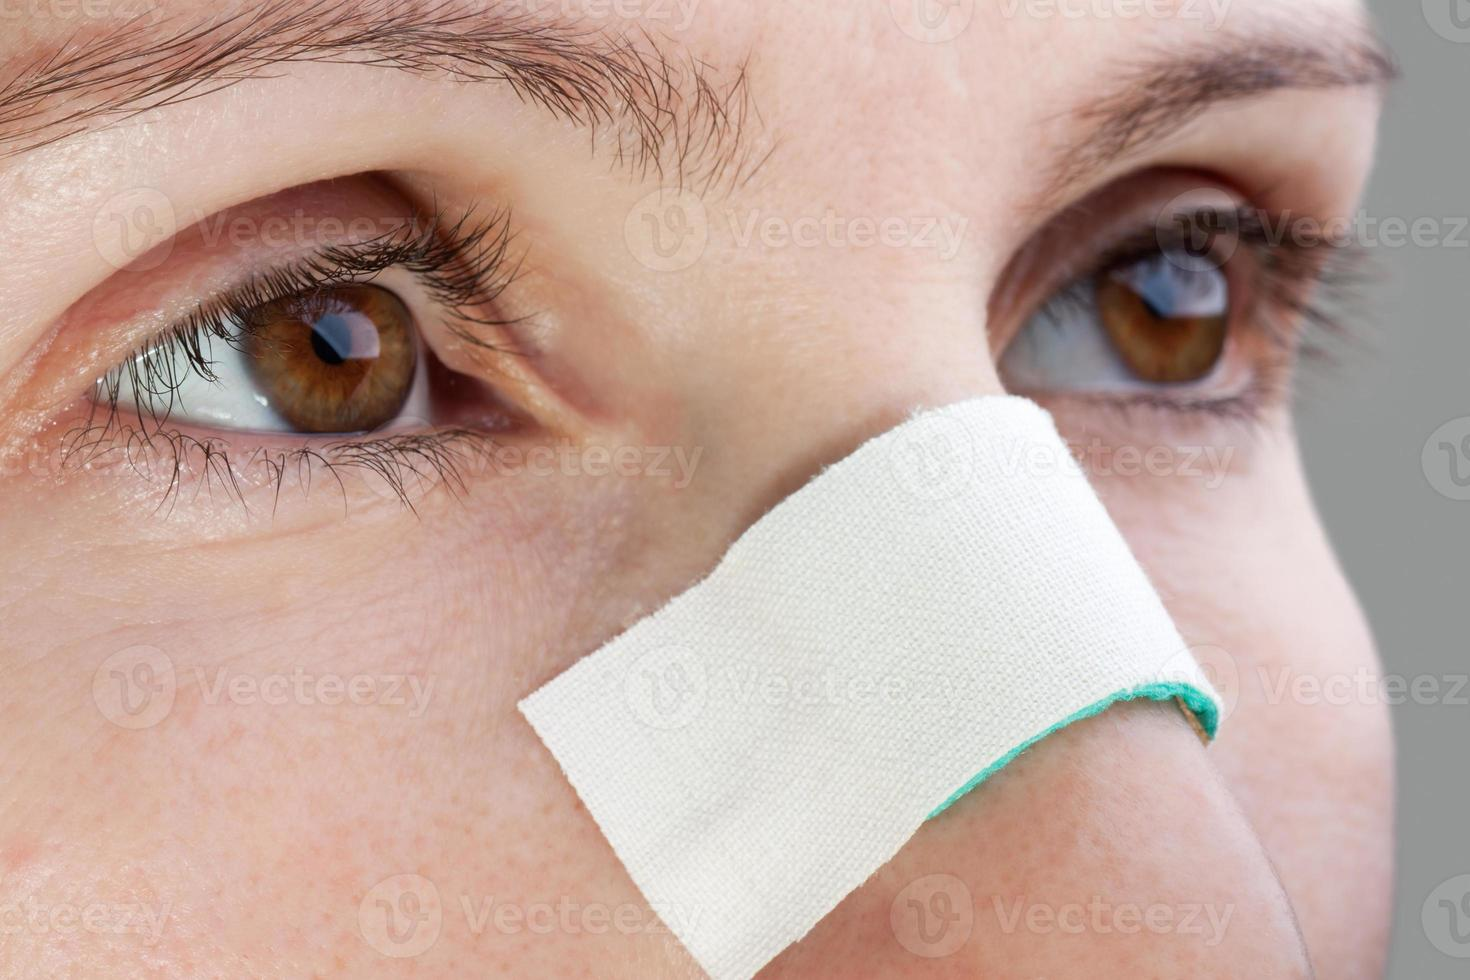 Plaster on wound nose photo